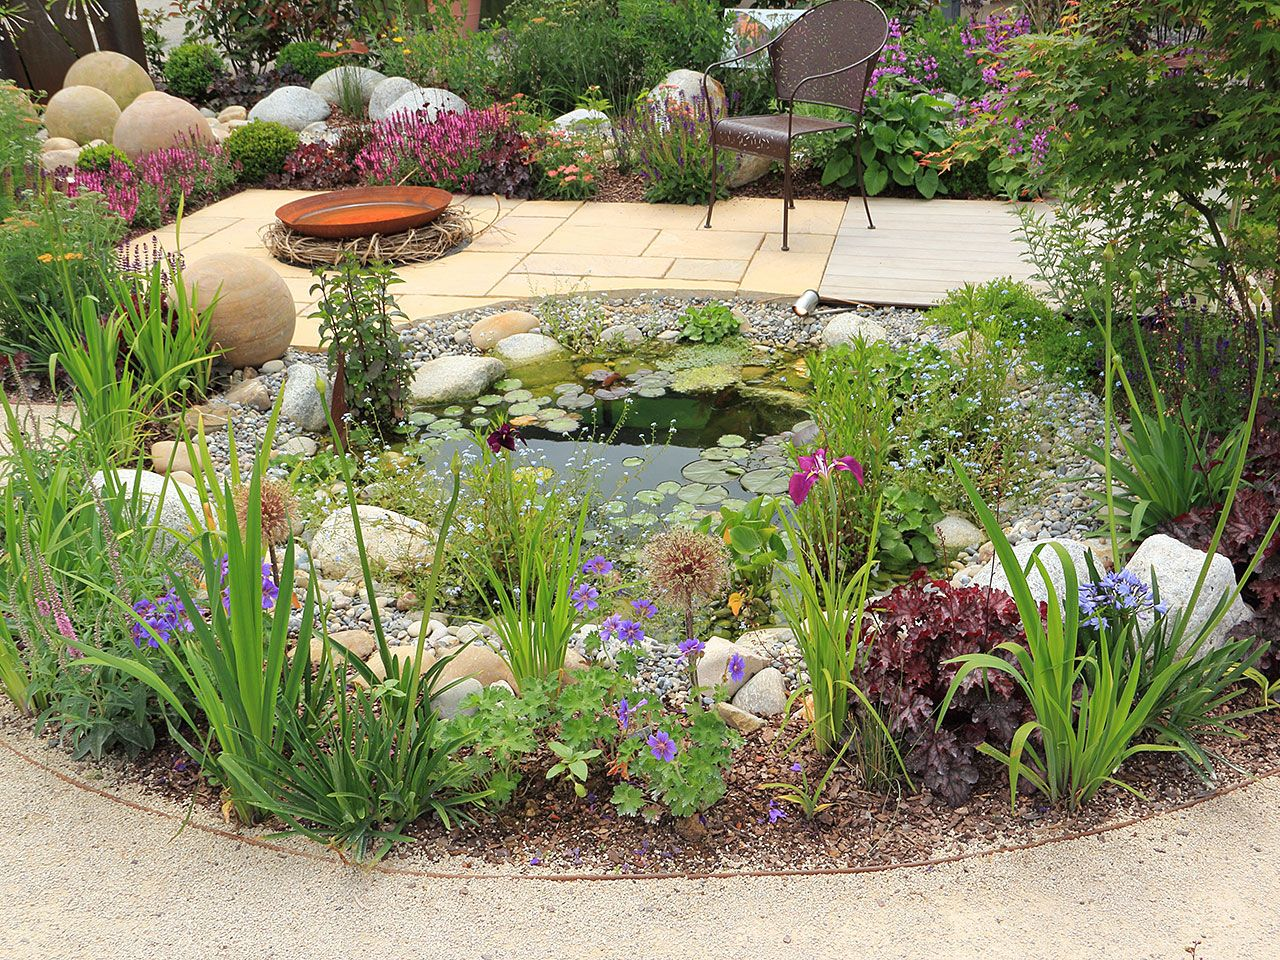 Small Garden Pond Ideas small yet adorable backyard pond ideas for your Garden Pond With Flowers And Shrubs